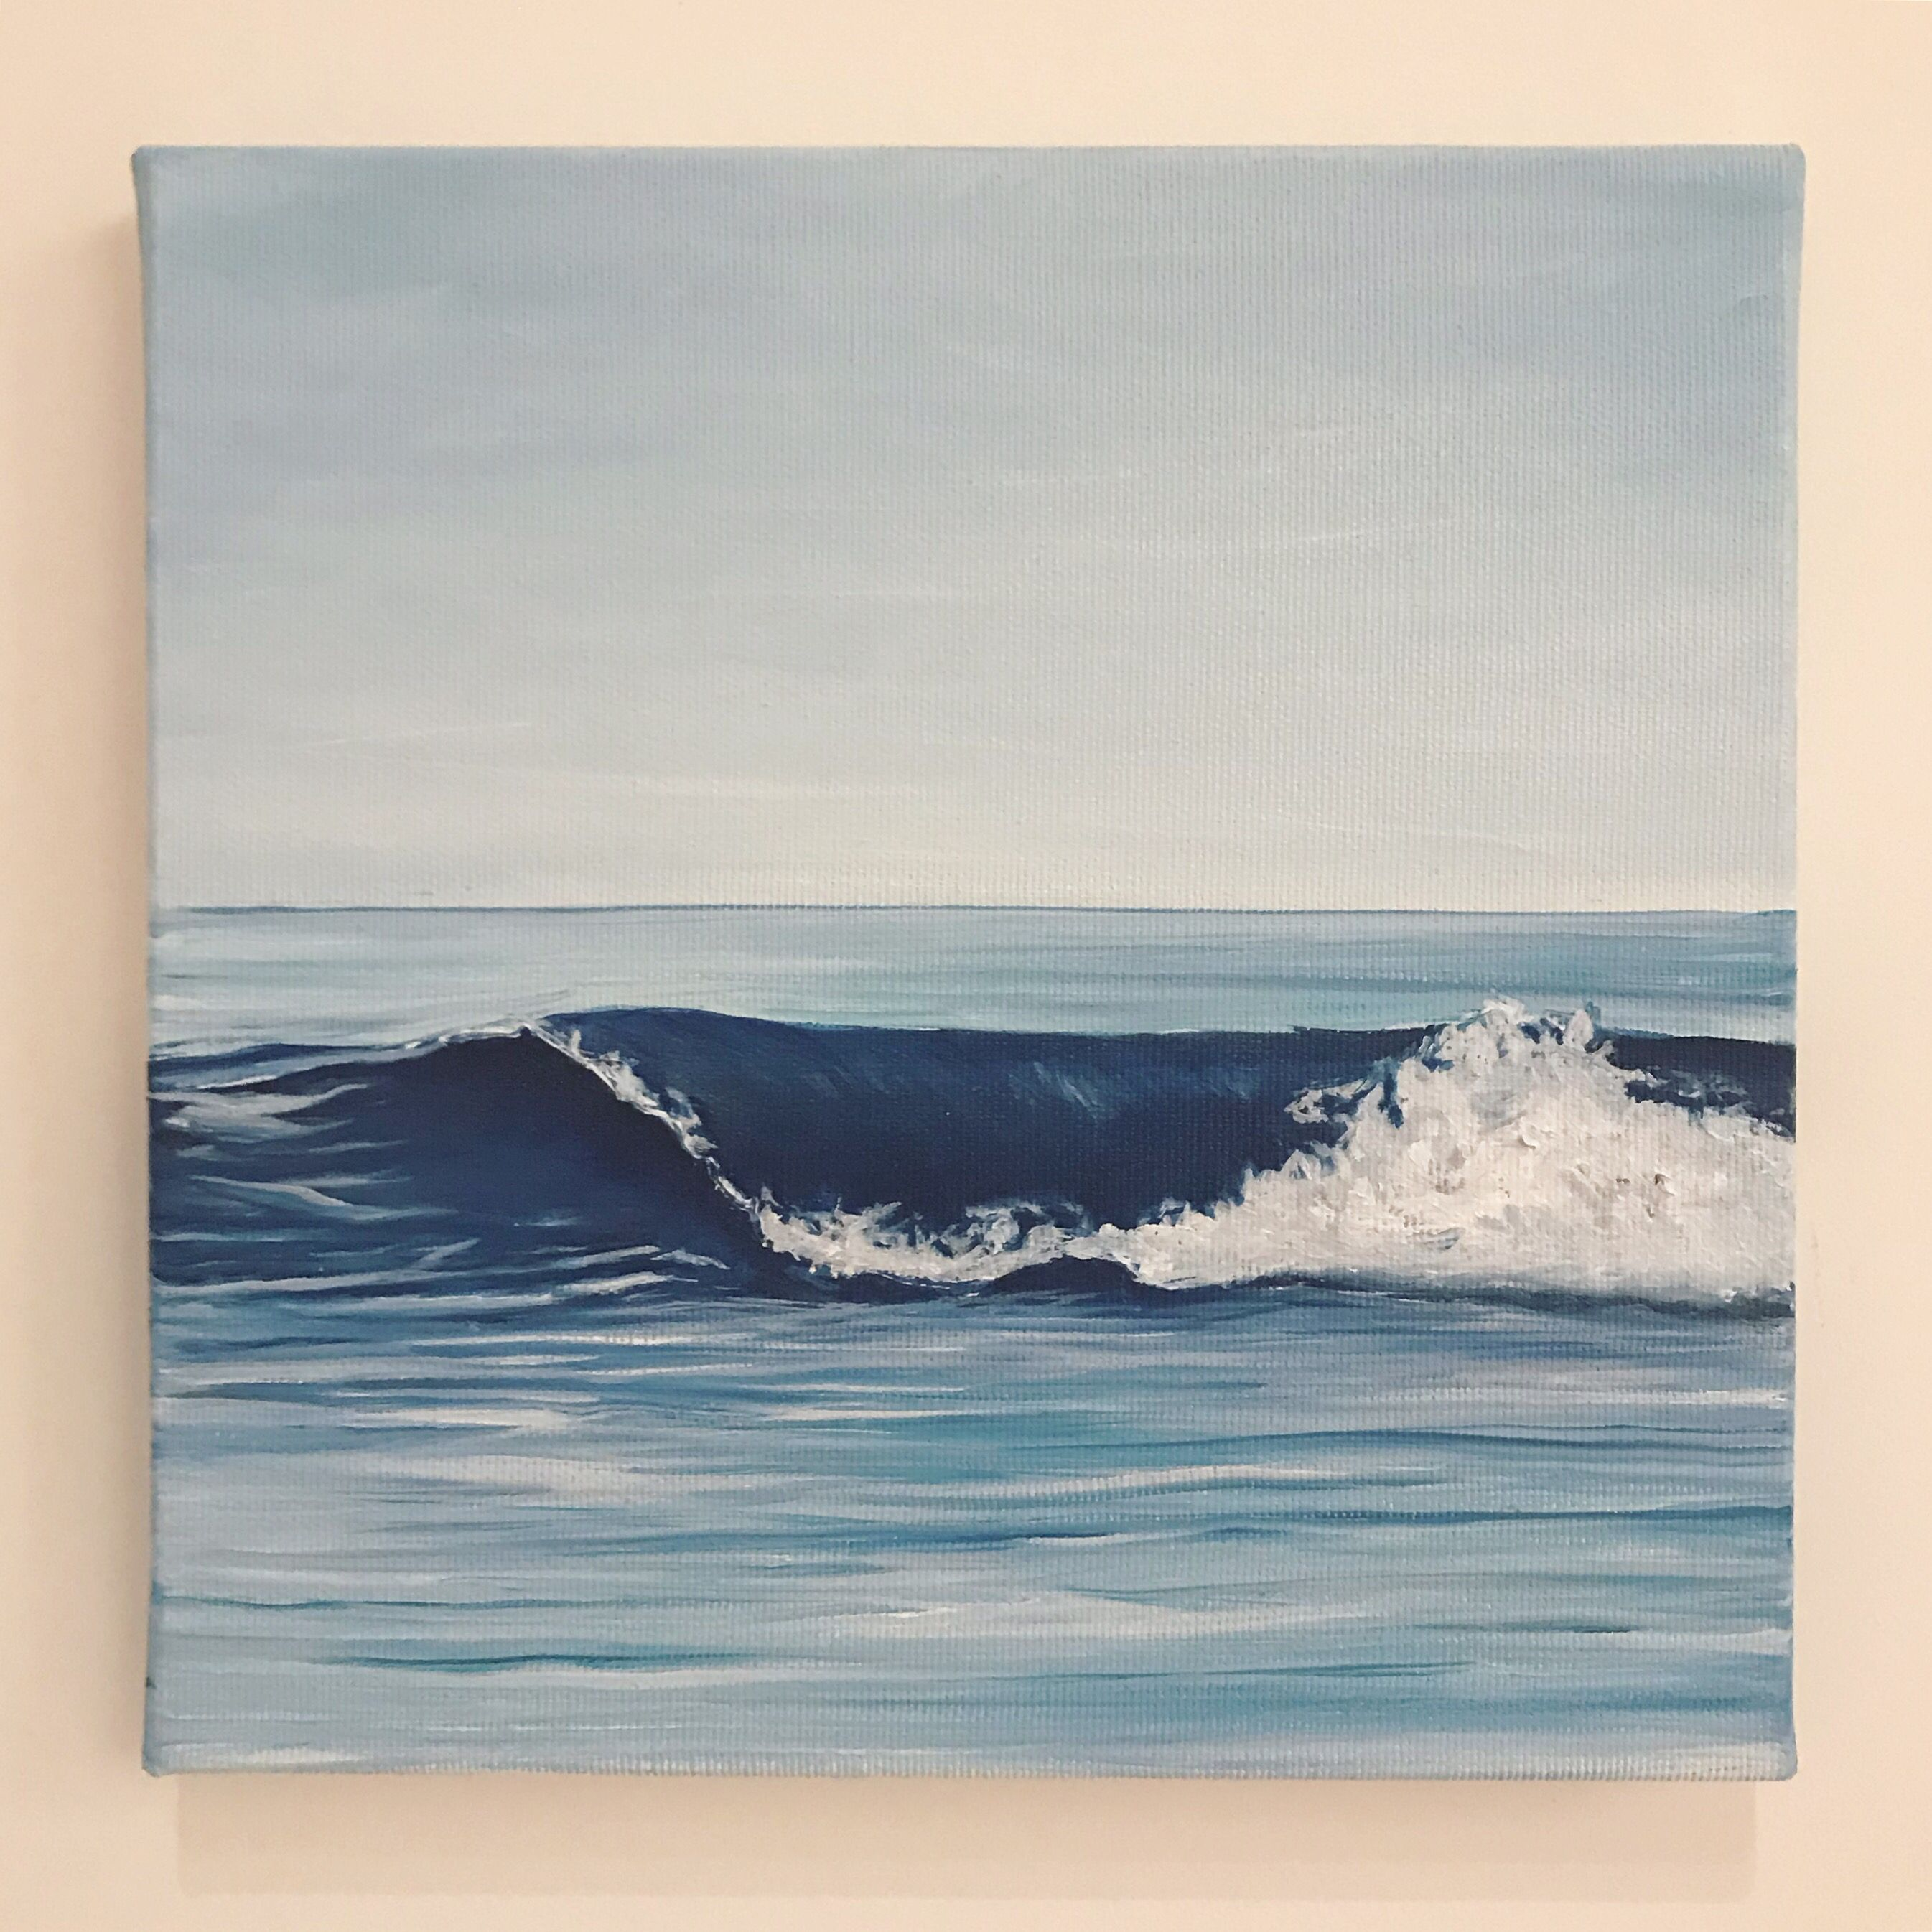 New Ocean Paintings On Canvas For Sale Oil Paintings Inspired By